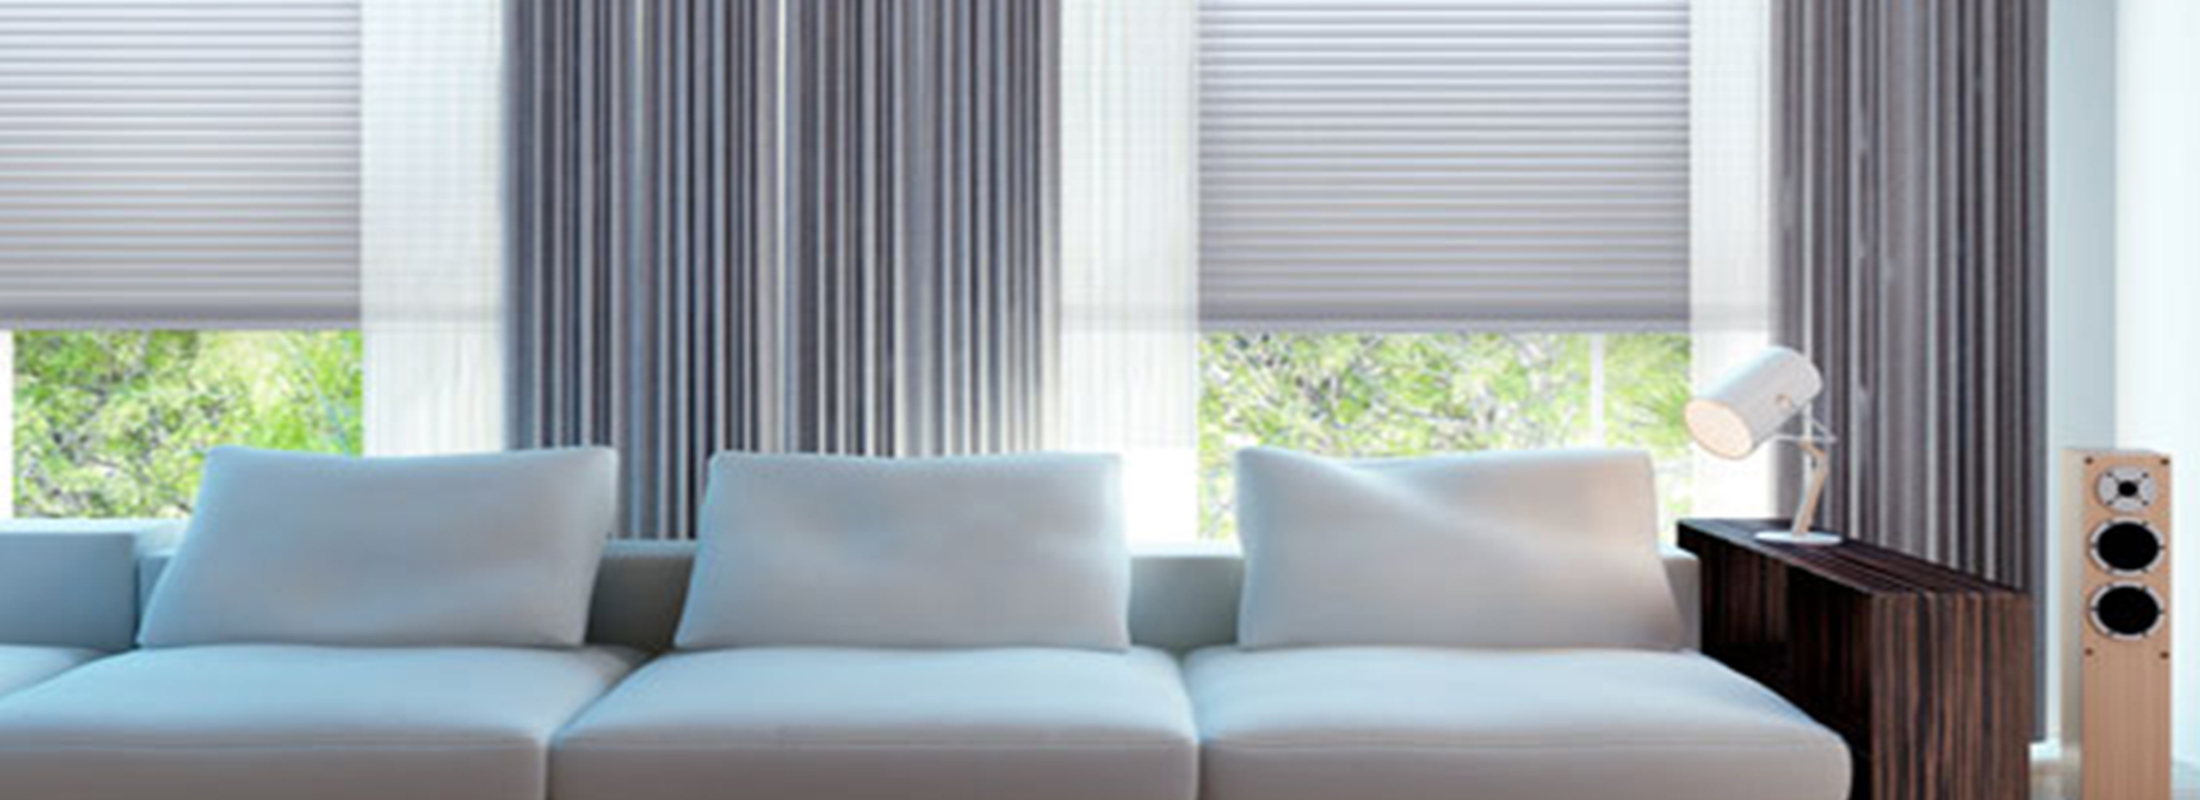 Get the CityLights Aluminum Blinds by Norman at The Blinds Man